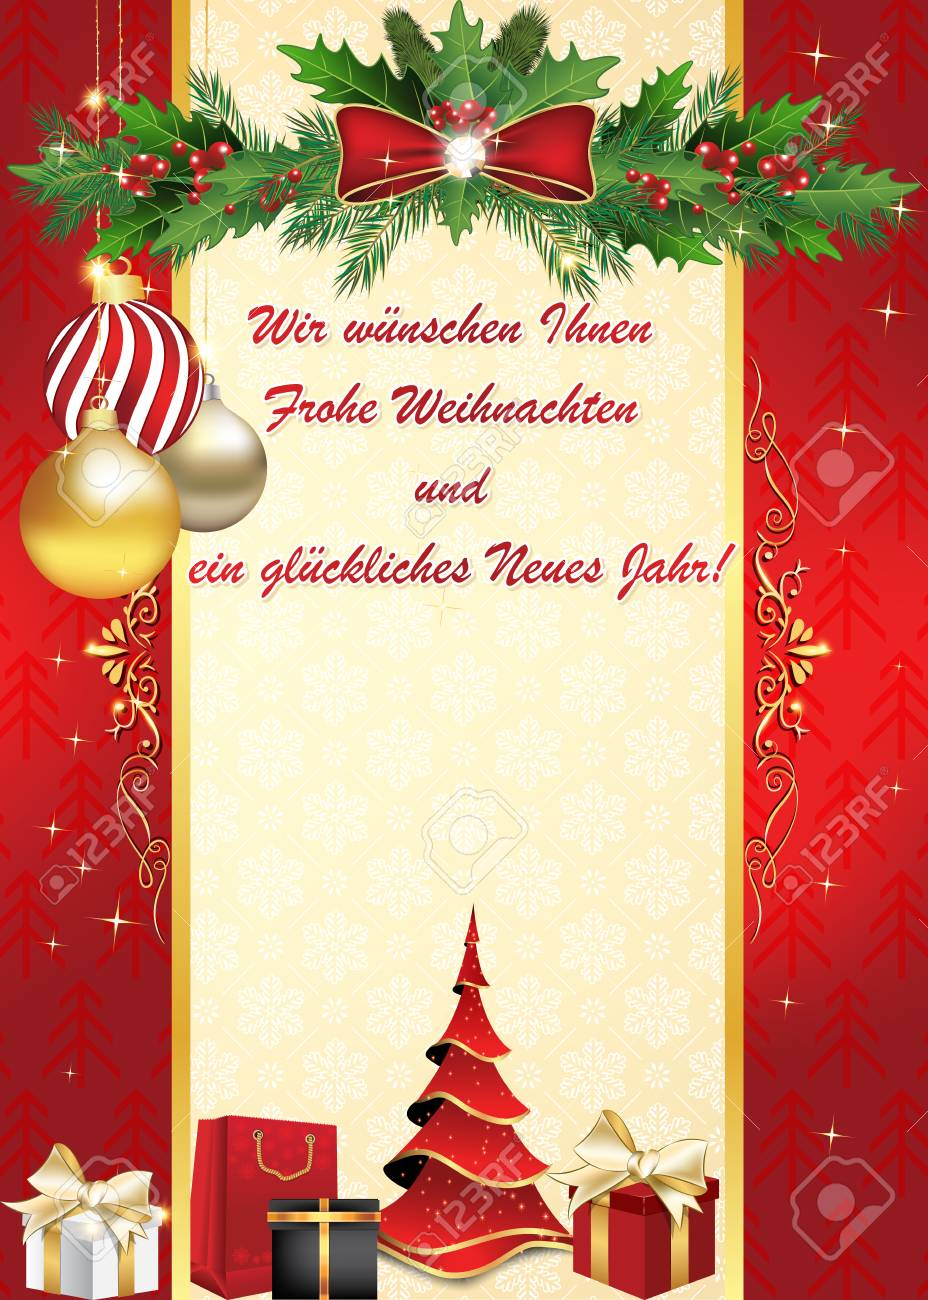 german we wish you merry christmas and happy new year greeting card wir wunschen ihnen